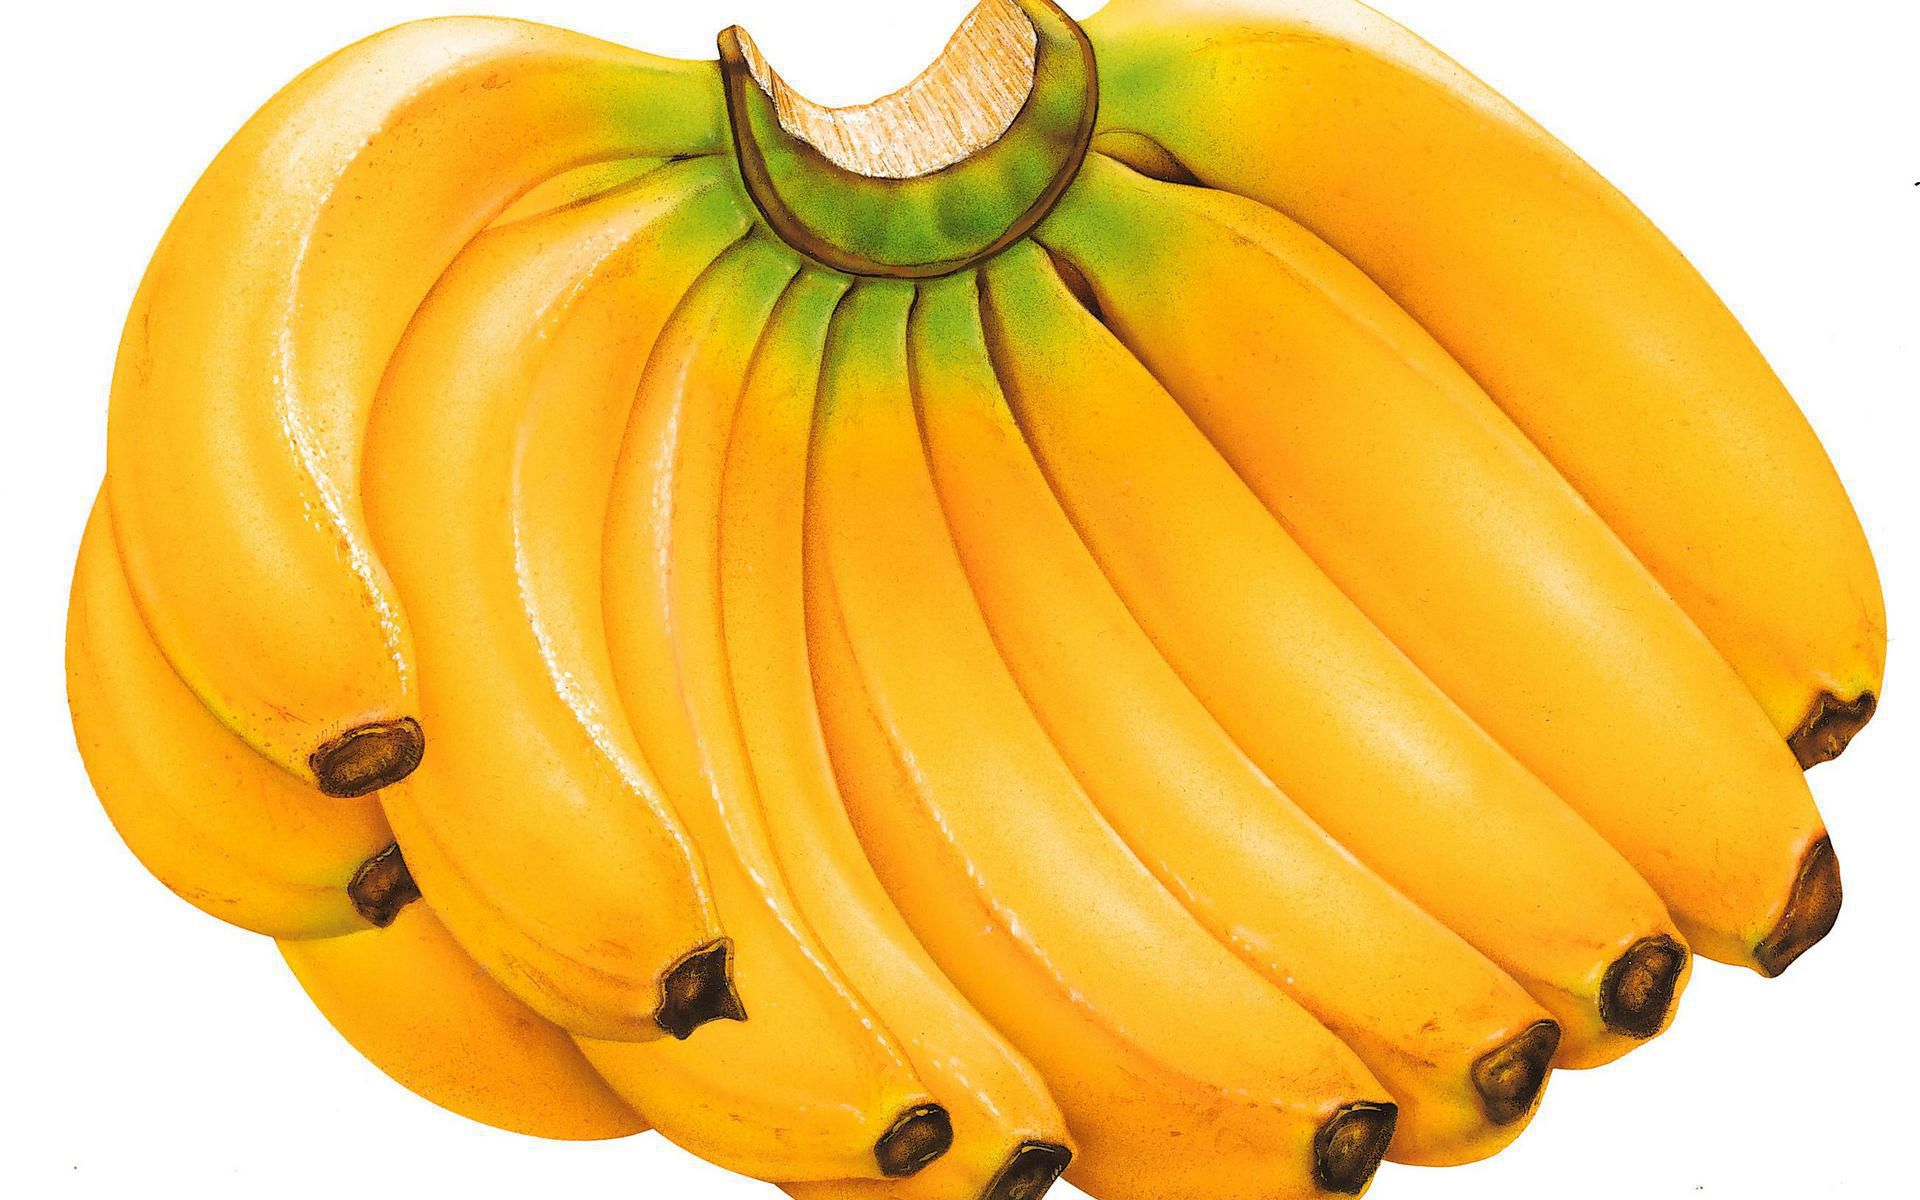 Bananas Wallpapers